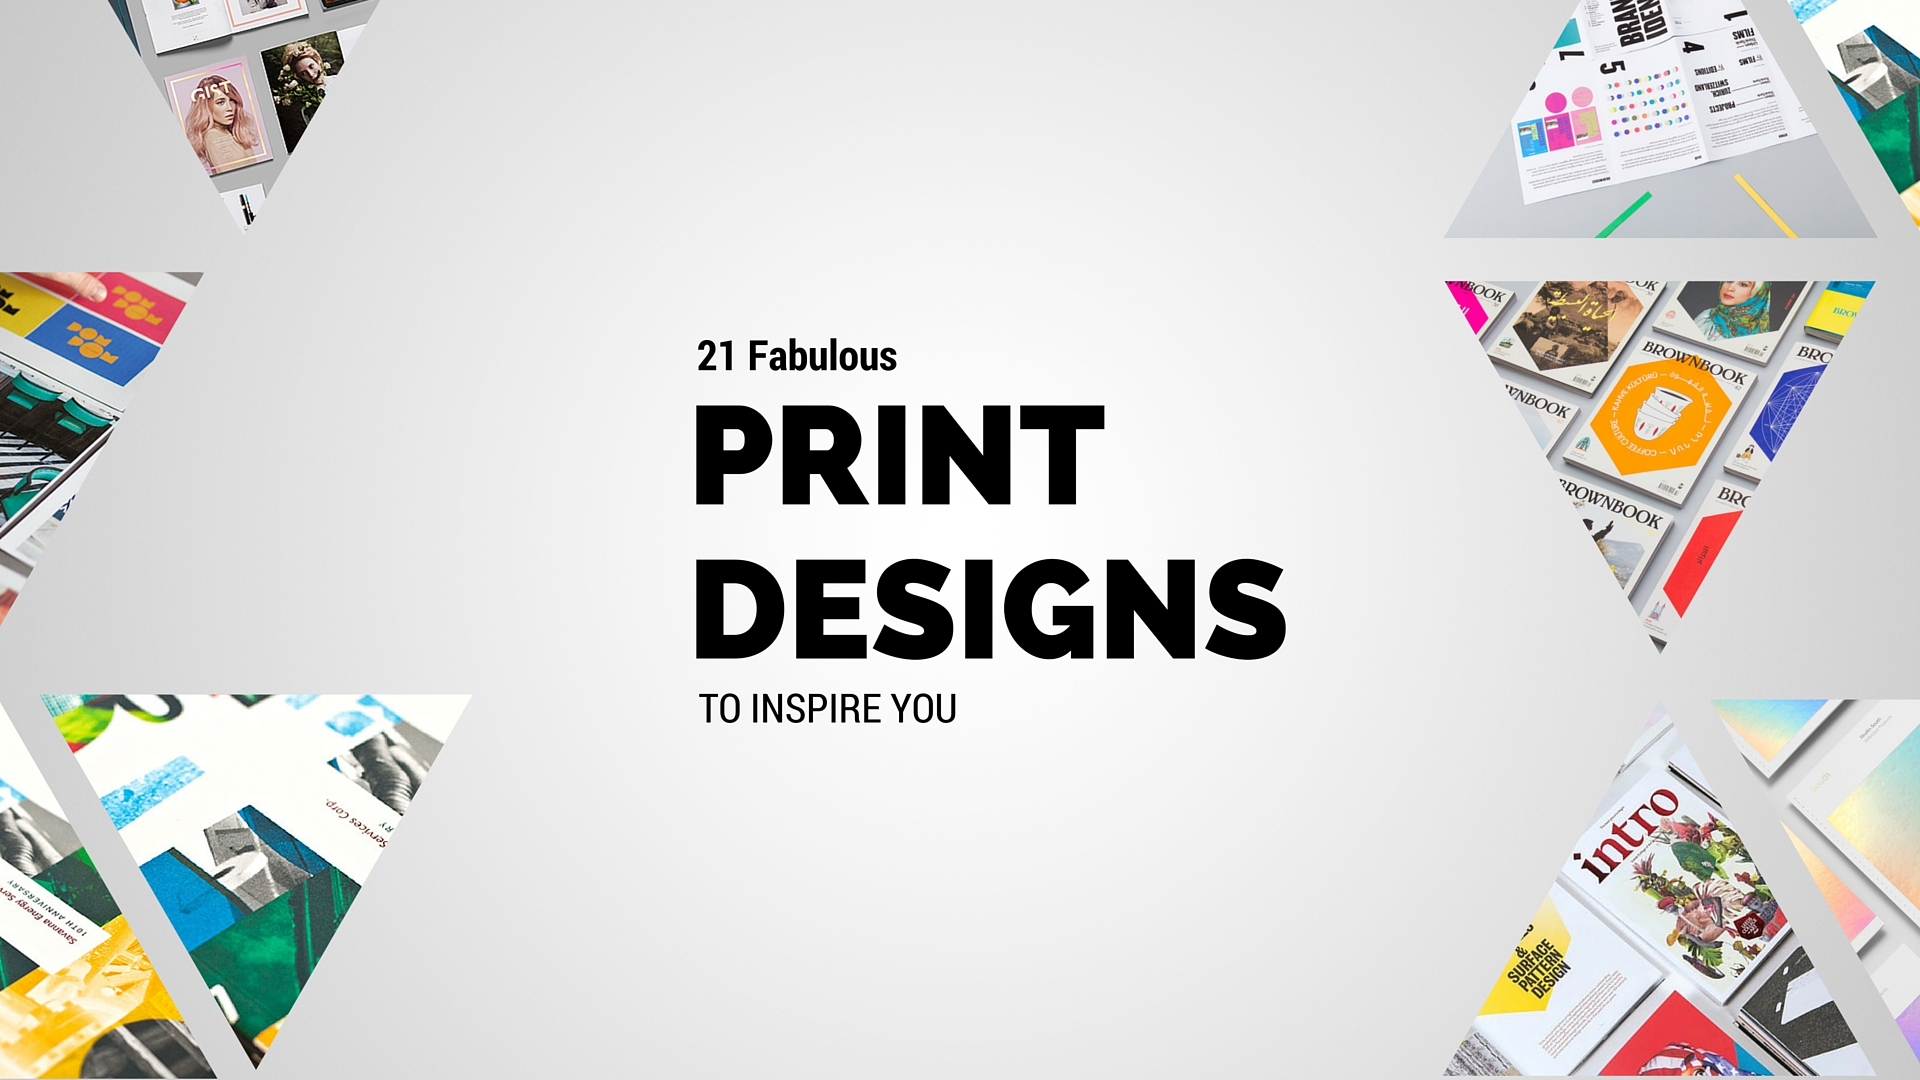 Top Print Design Inspiration Projects To Inspire You This Week